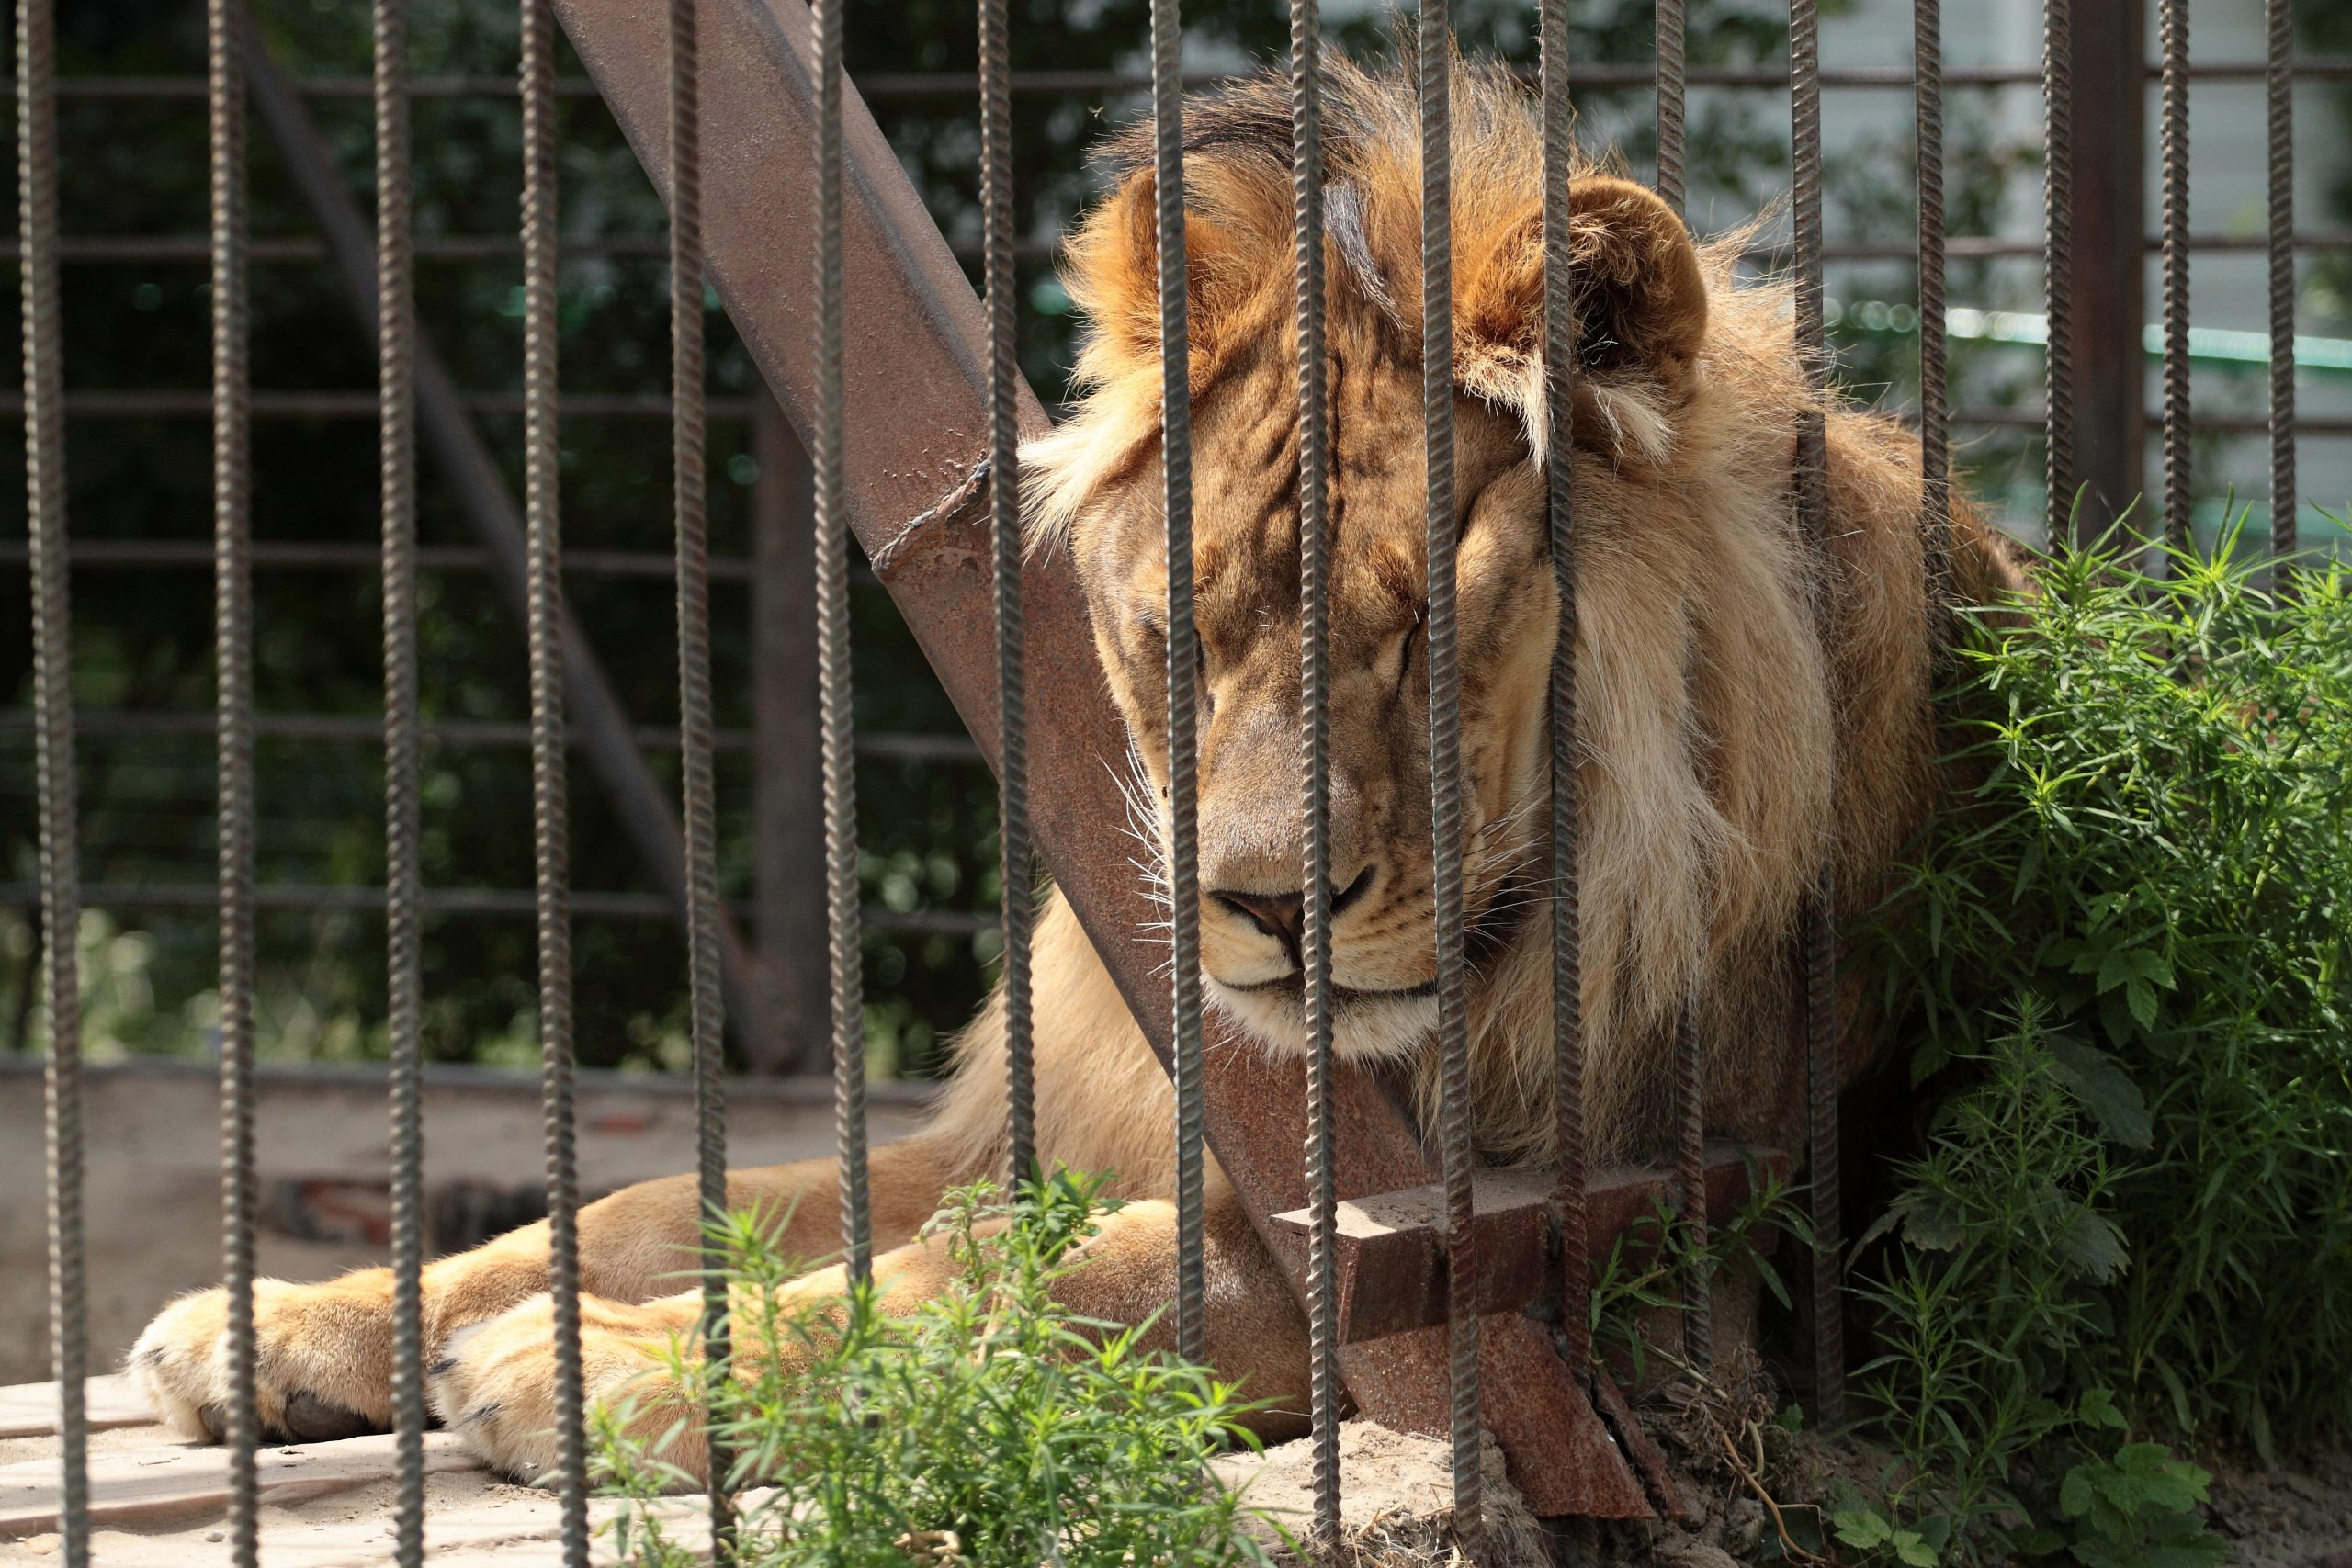 lion in cage at zoo